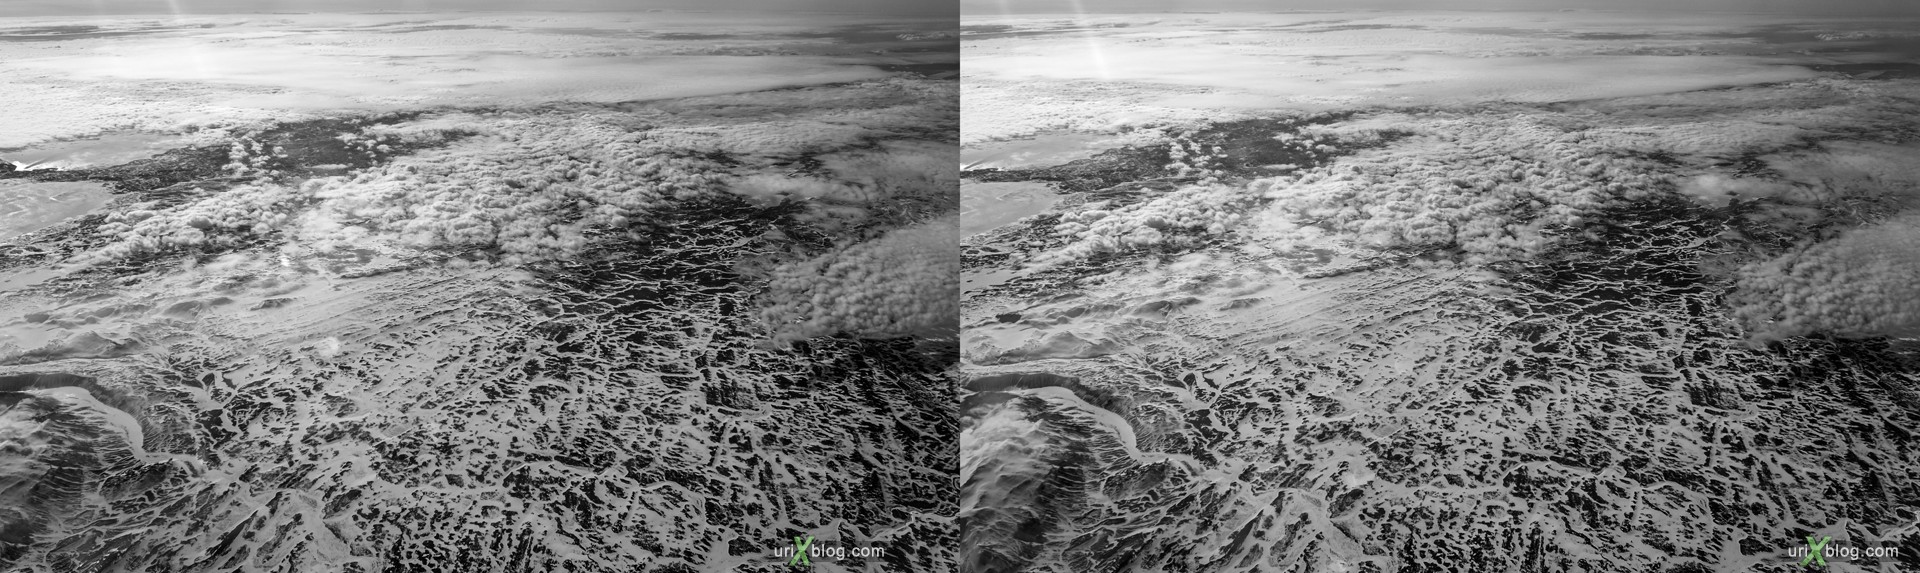 2013, Iceland, mountains, panorama, airplane, black and white, bw, snow, ice, clouds, horizon, 3D, stereo pair, cross-eyed, crossview, cross view stereo pair, stereoscopic